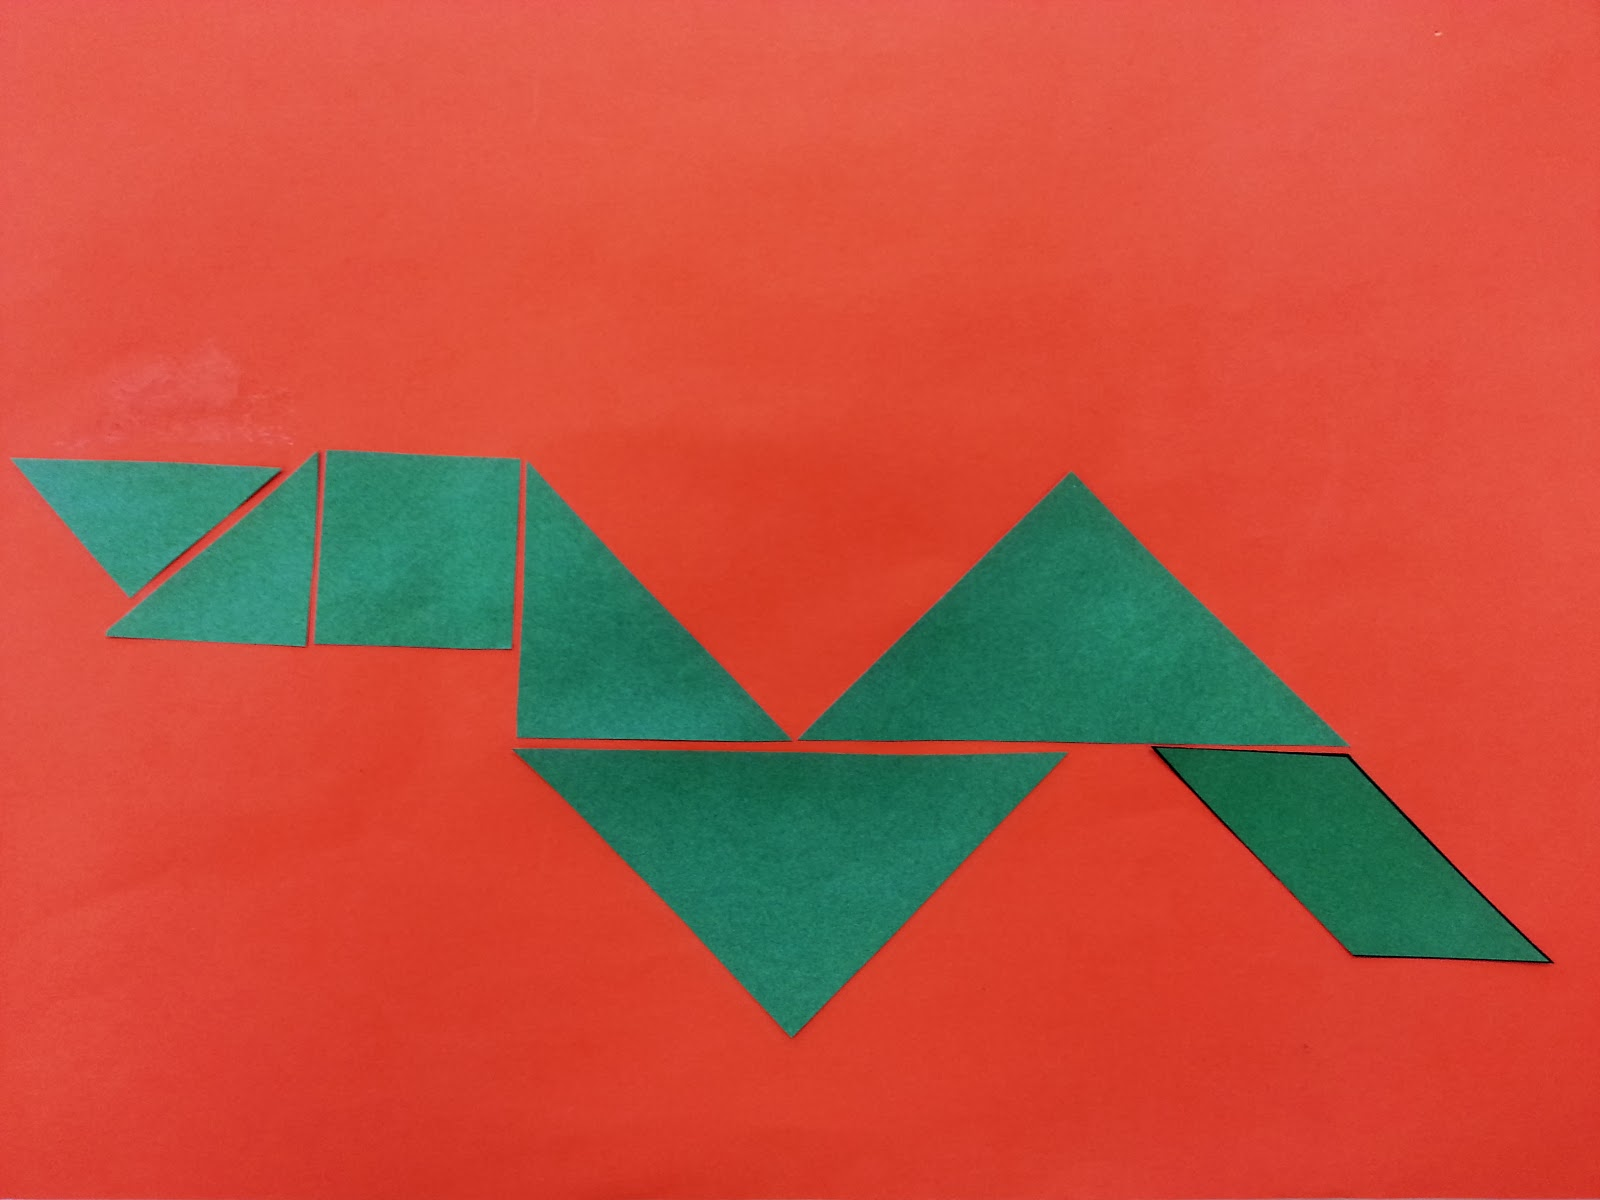 snake crafts for kids tangrams for kids year of the snake - Chinese New Year 1989